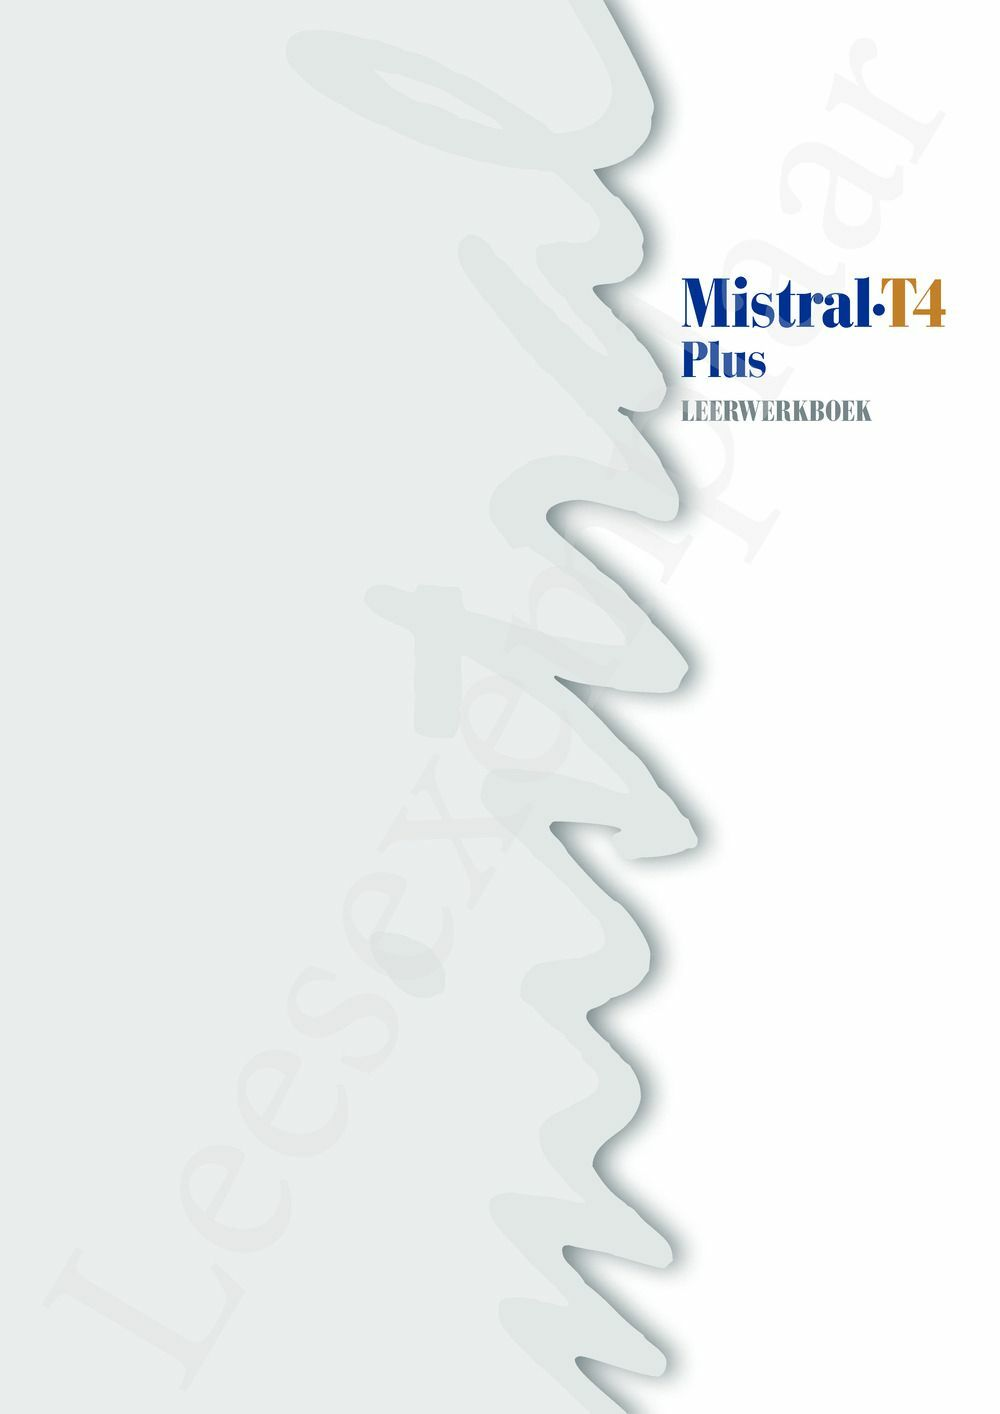 Preview: Mistral T4 Plus Leerwerkboek